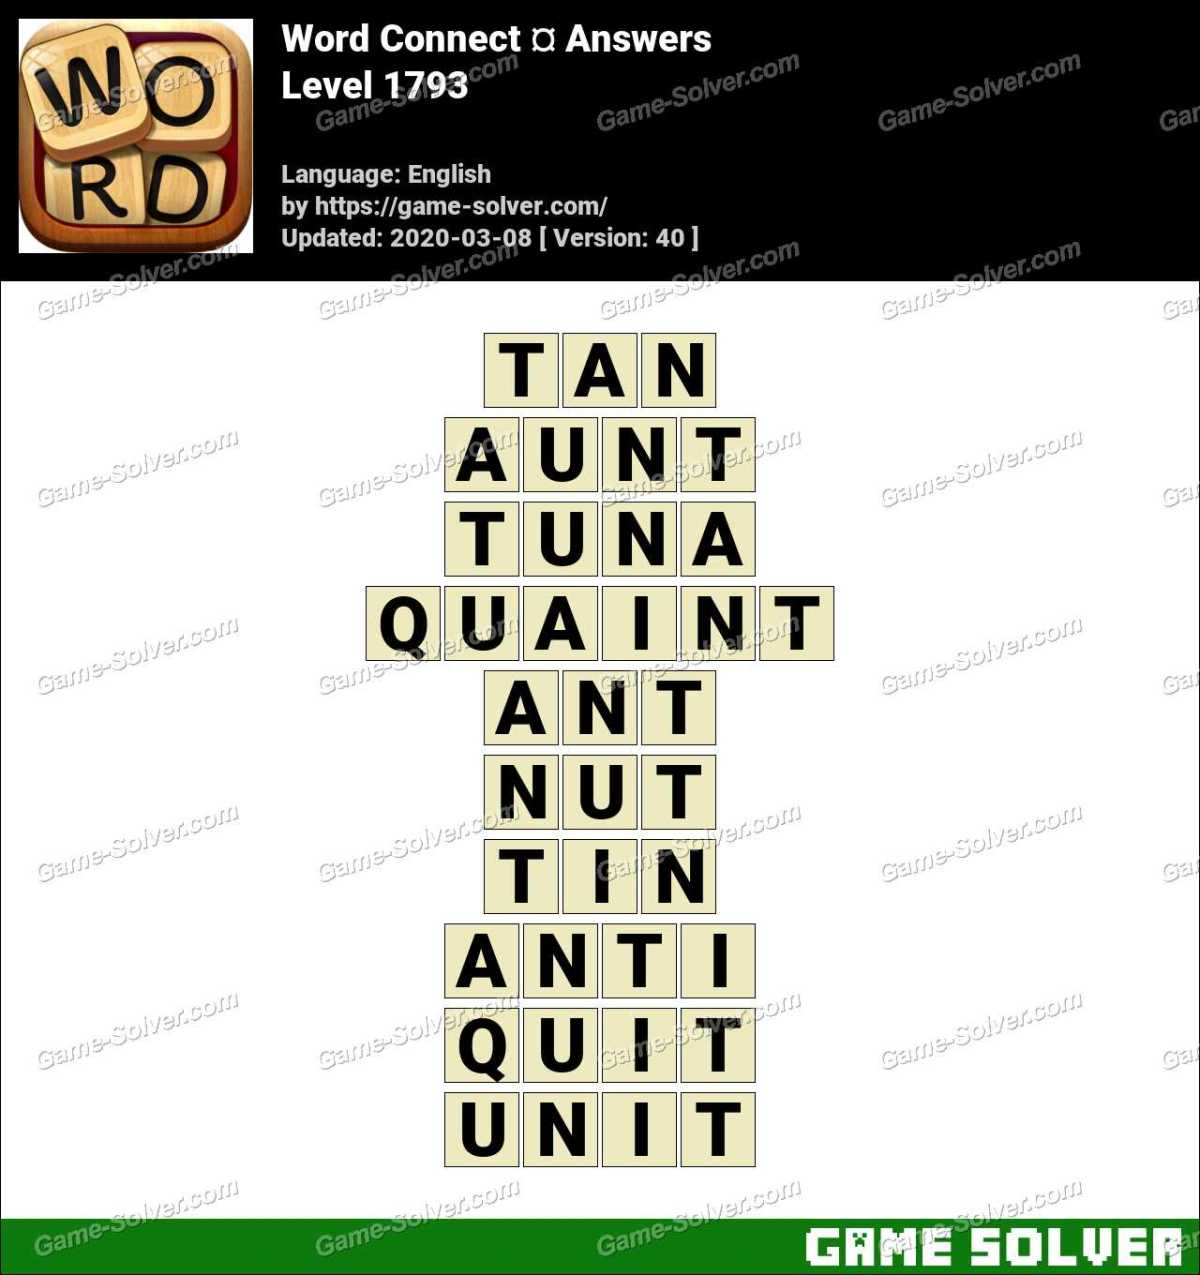 Word Connect Level 1793 Answers